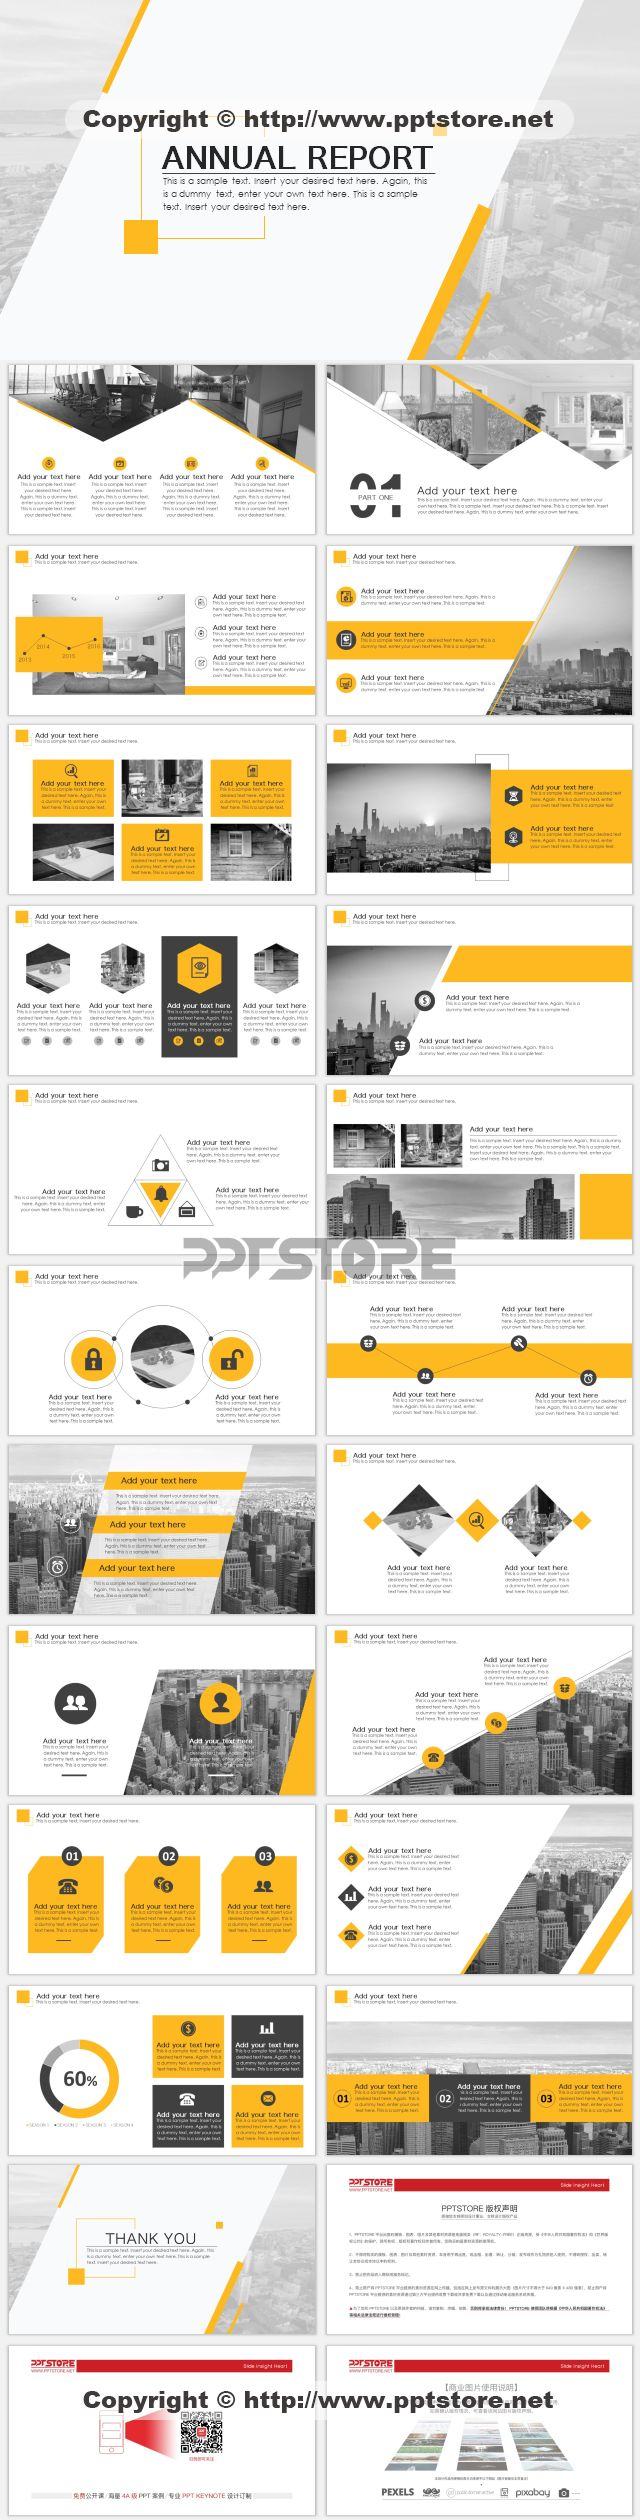 Best 25 ppt design ideas on pinterest presentation design httppicpptstorepptpic6031 alramifo Choice Image